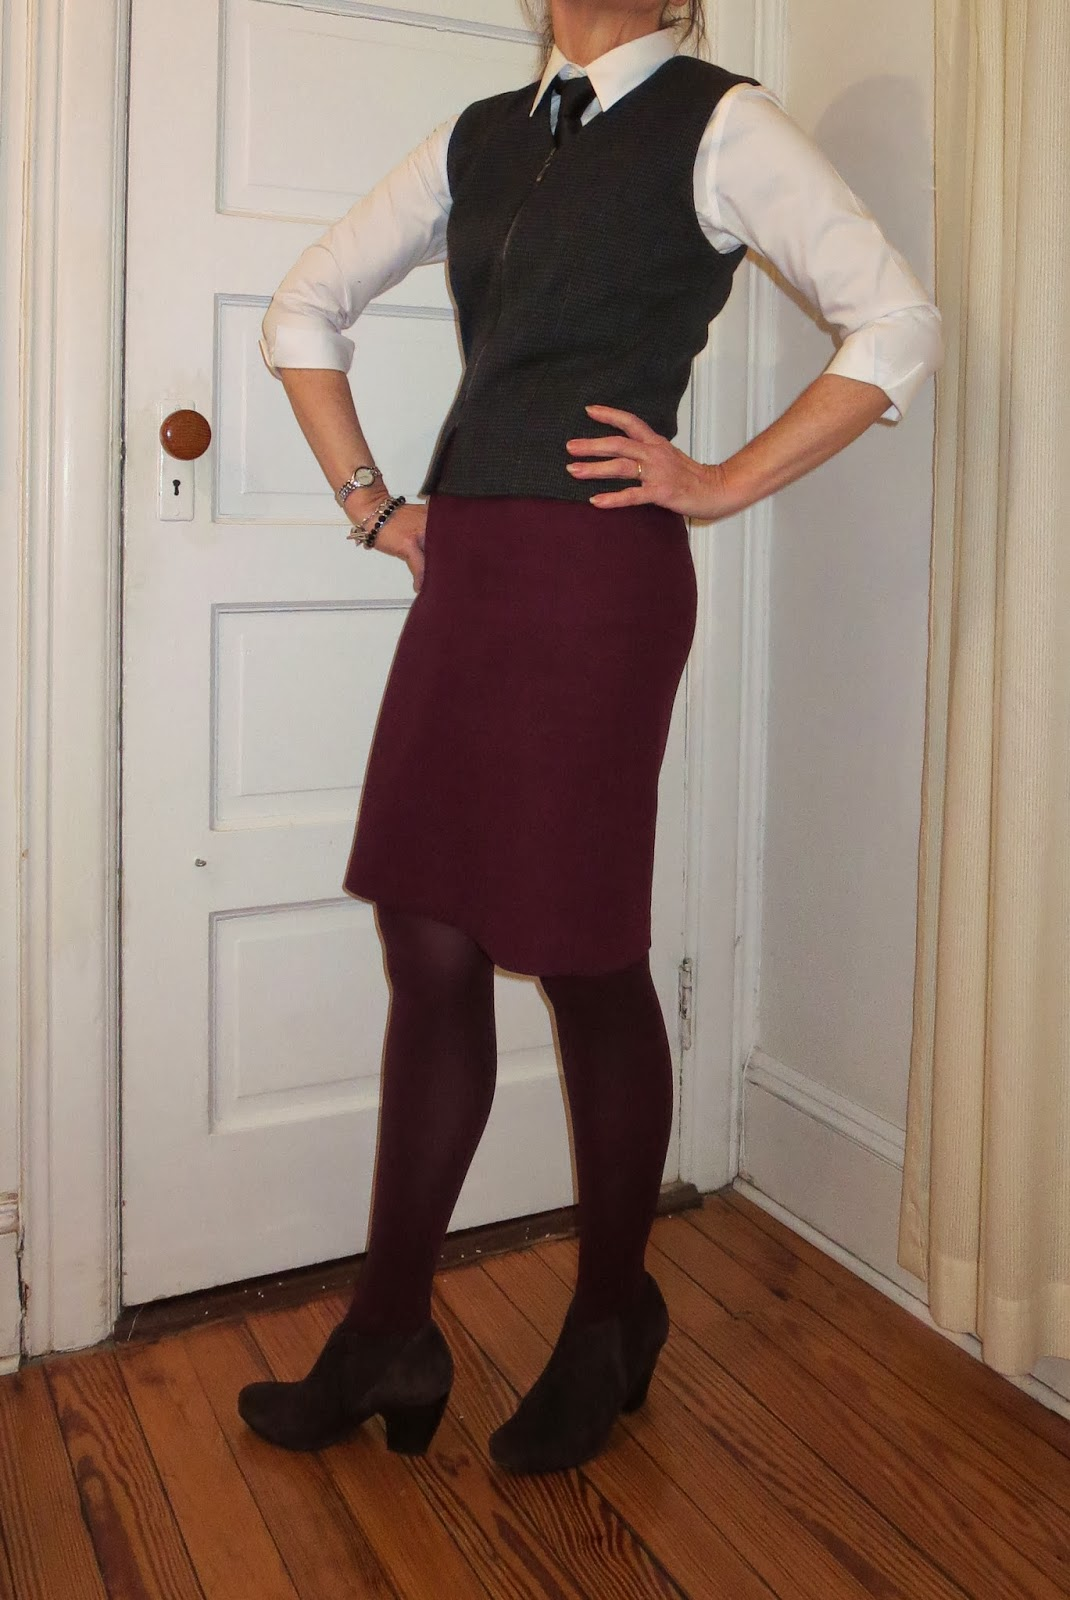 tie and vest for women over 50